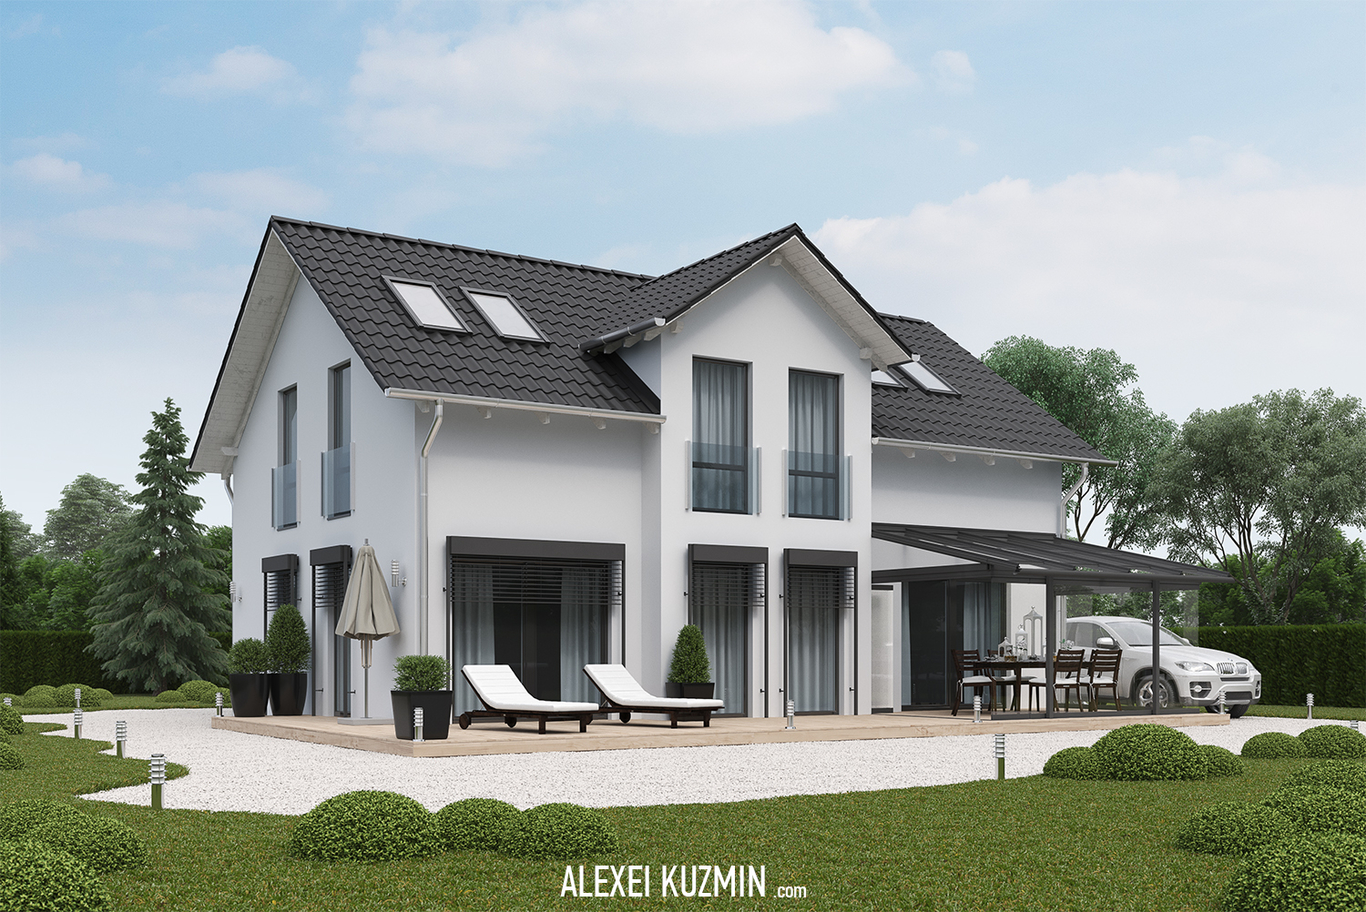 Alexkuzmin country house 1 5dad8bb6 27iw